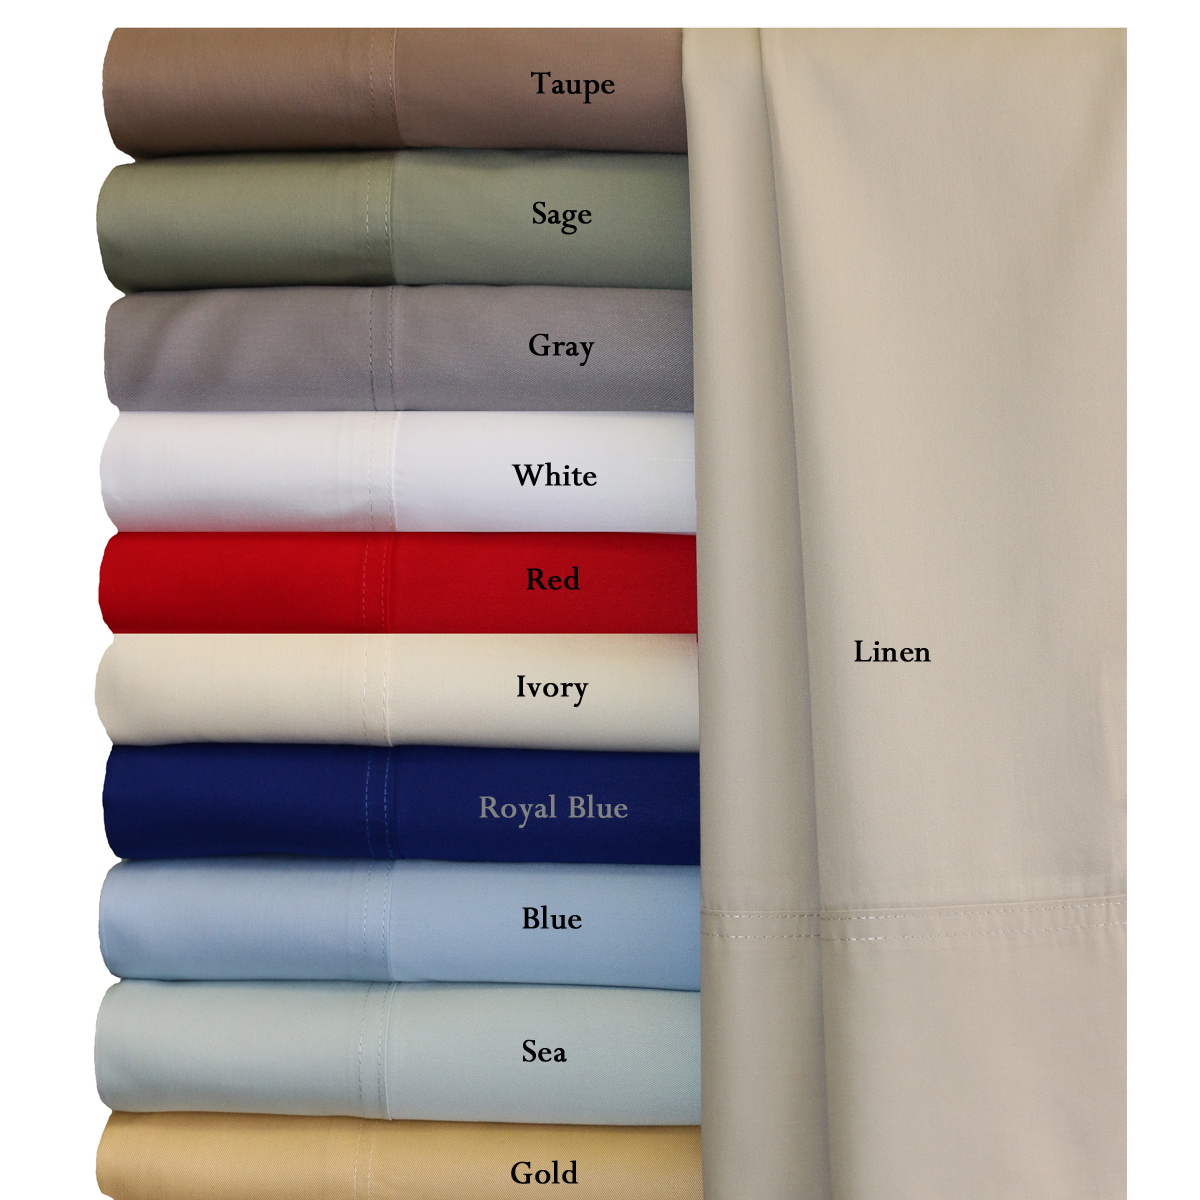 "Royal Tradition. Super Soft 100% Viscose from Bamboo Sheet Sets. Wrap your self in the softness of the luxurious 100% Rayon from Bamboo sheets like those found in royalty homes. You won't be able to go back to cotton sheets after trying these 100% Viscose from Bamboo sheets. Amazingly soft similar to cashmere of silk. 60% more absorbent than cotton. Sustainable, fast growth rate over 1 meter per day. Requires significantly less pesticides than cotton and is naturally irrigated. Natural anti-bacterial and deodorizing properties.*"" Viscose from Bamboo "" or "" Rayon from Bamboo"" are both interchangeable common terms used when referring the Bamboo fabric derivatives. Bamboo woods undergo additional process before the fibers are spun into yarns. Therefore, bamboo yarns are turned into a Viscose or Rayon than woven to create bamboo fabrics.* Bamboo is one of the fastest growing plants because of it's ability to absorb water and is thus a very environmentally friendly material. These are the "" Greenest Sheets"" around. This explain why bamboo sheets wick so much water away from the body, keeping people dry and comfortable. Extremely comfortable in all temperatures. * Bamboo is grown without pesticides. Bamboo is highly resistant to dust mites."